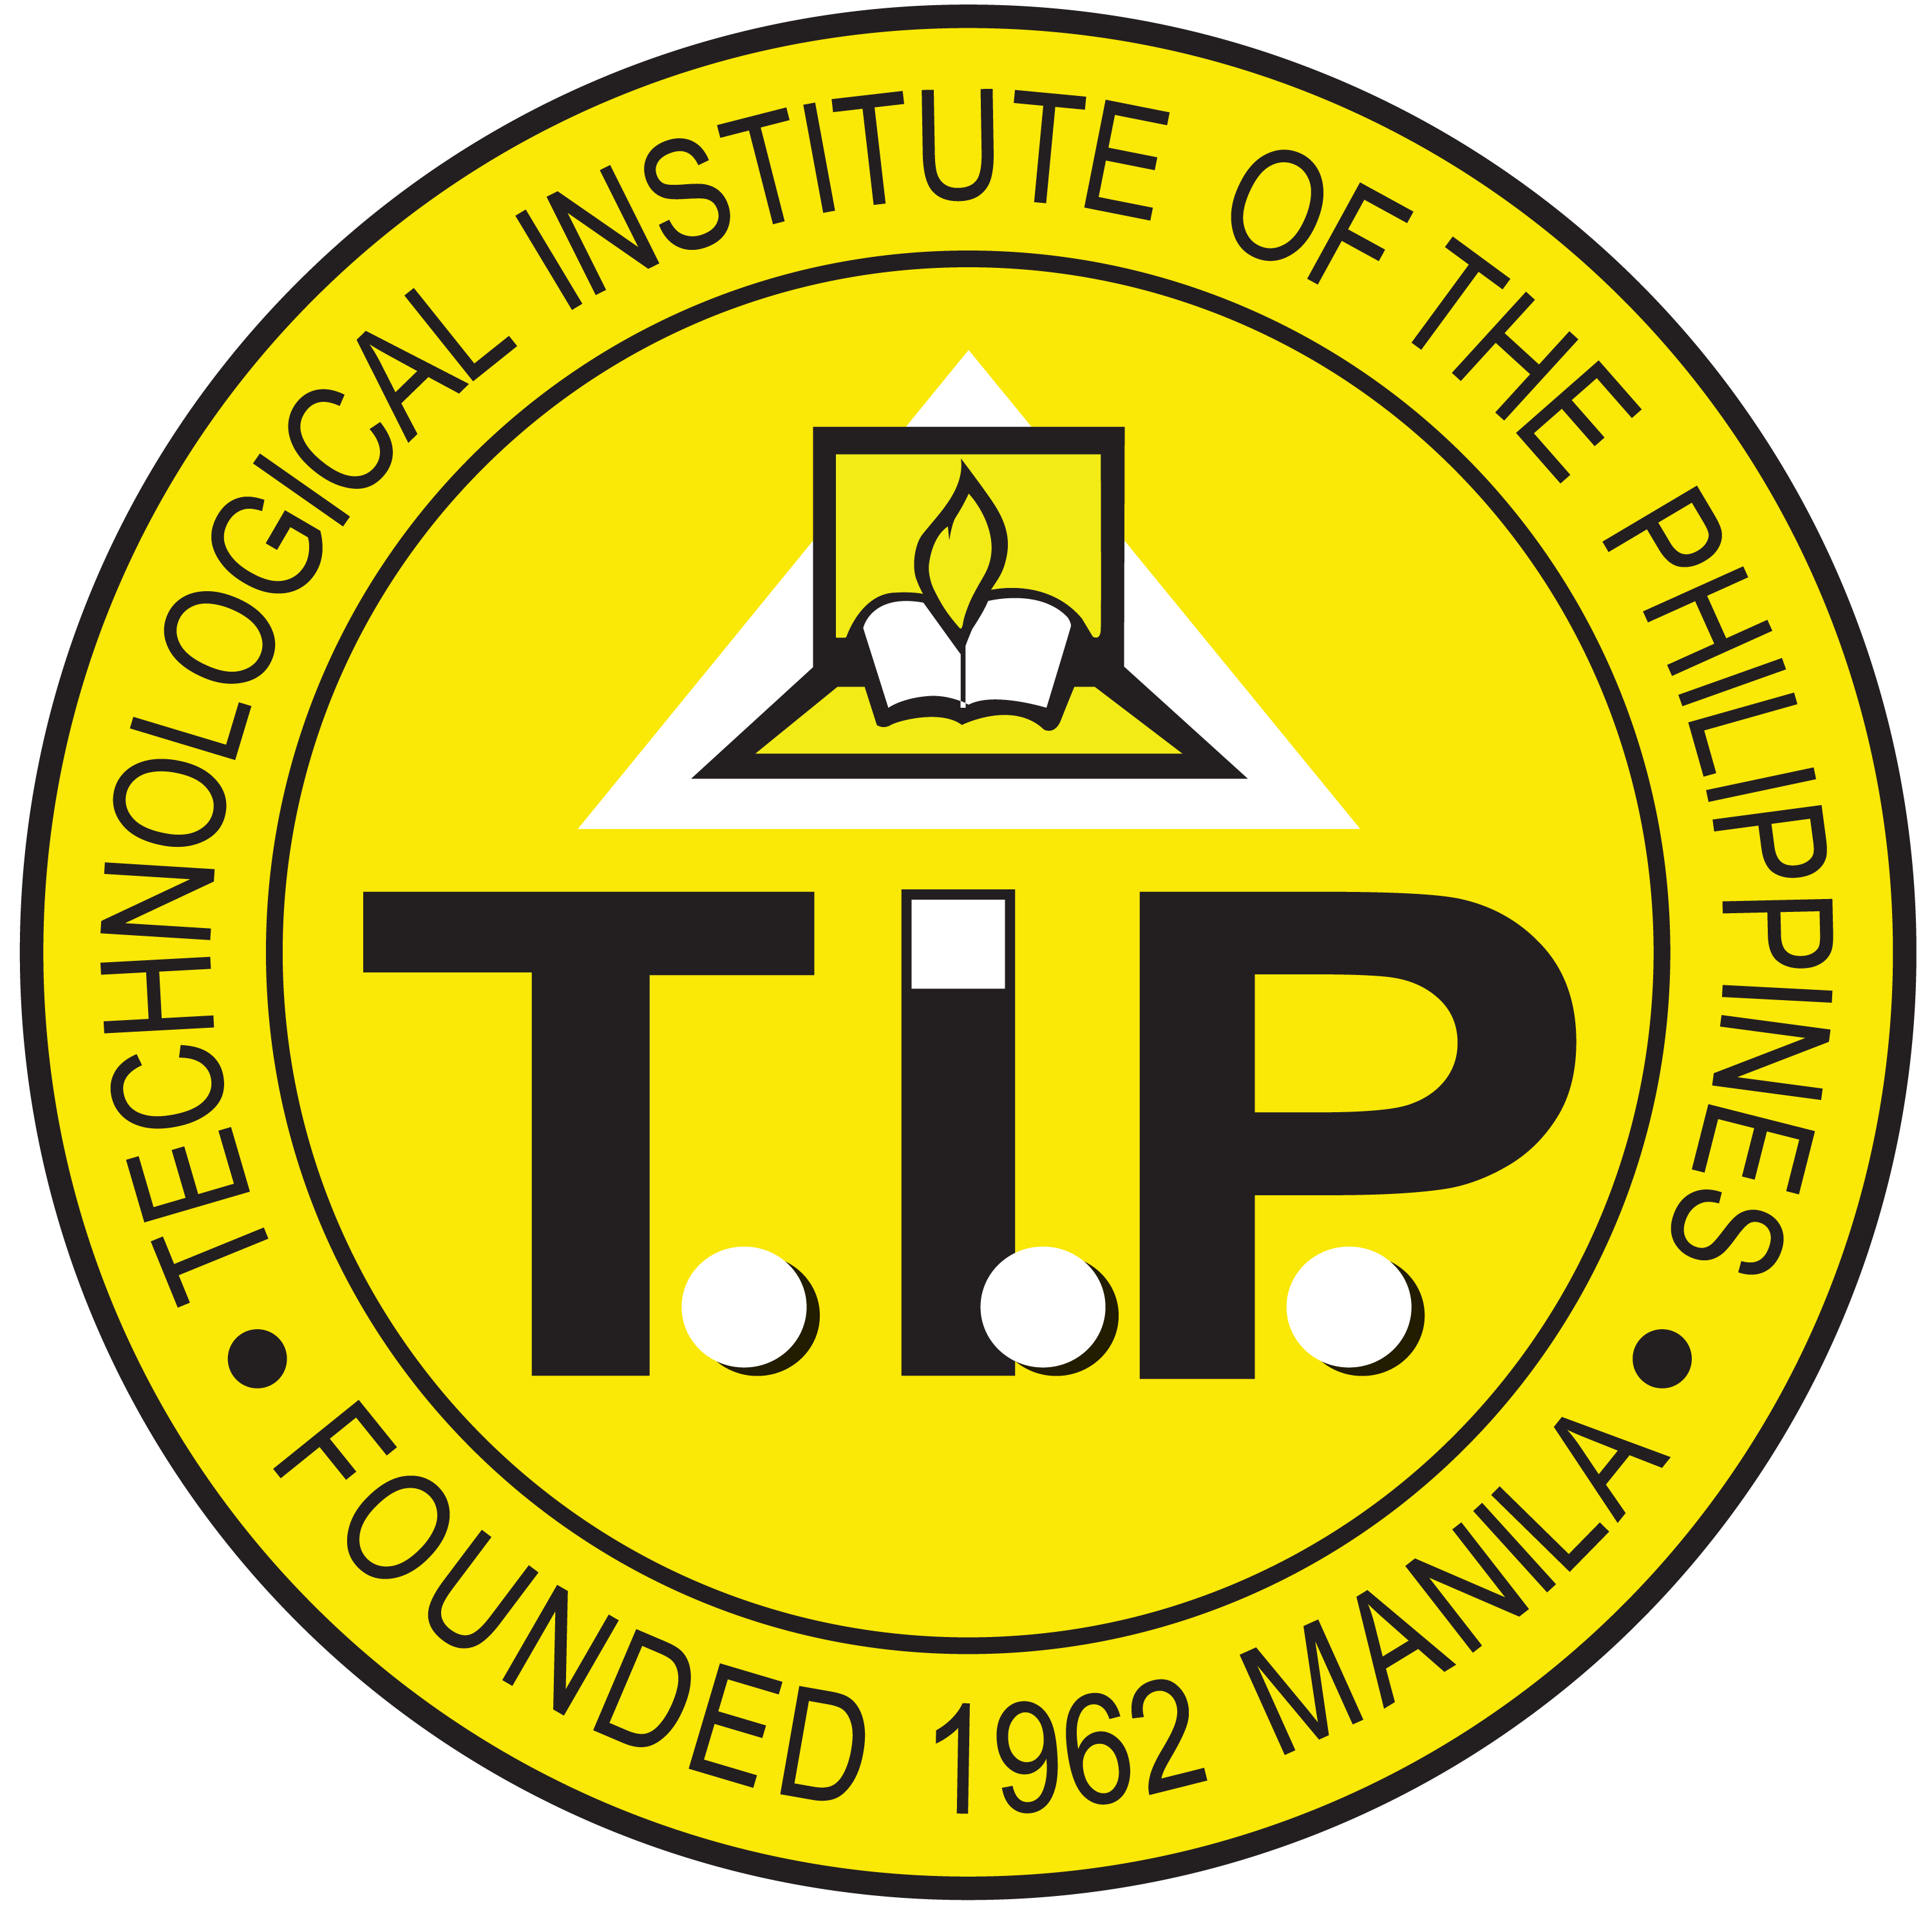 Technological Institute of the Philippines - Quezon City Logo